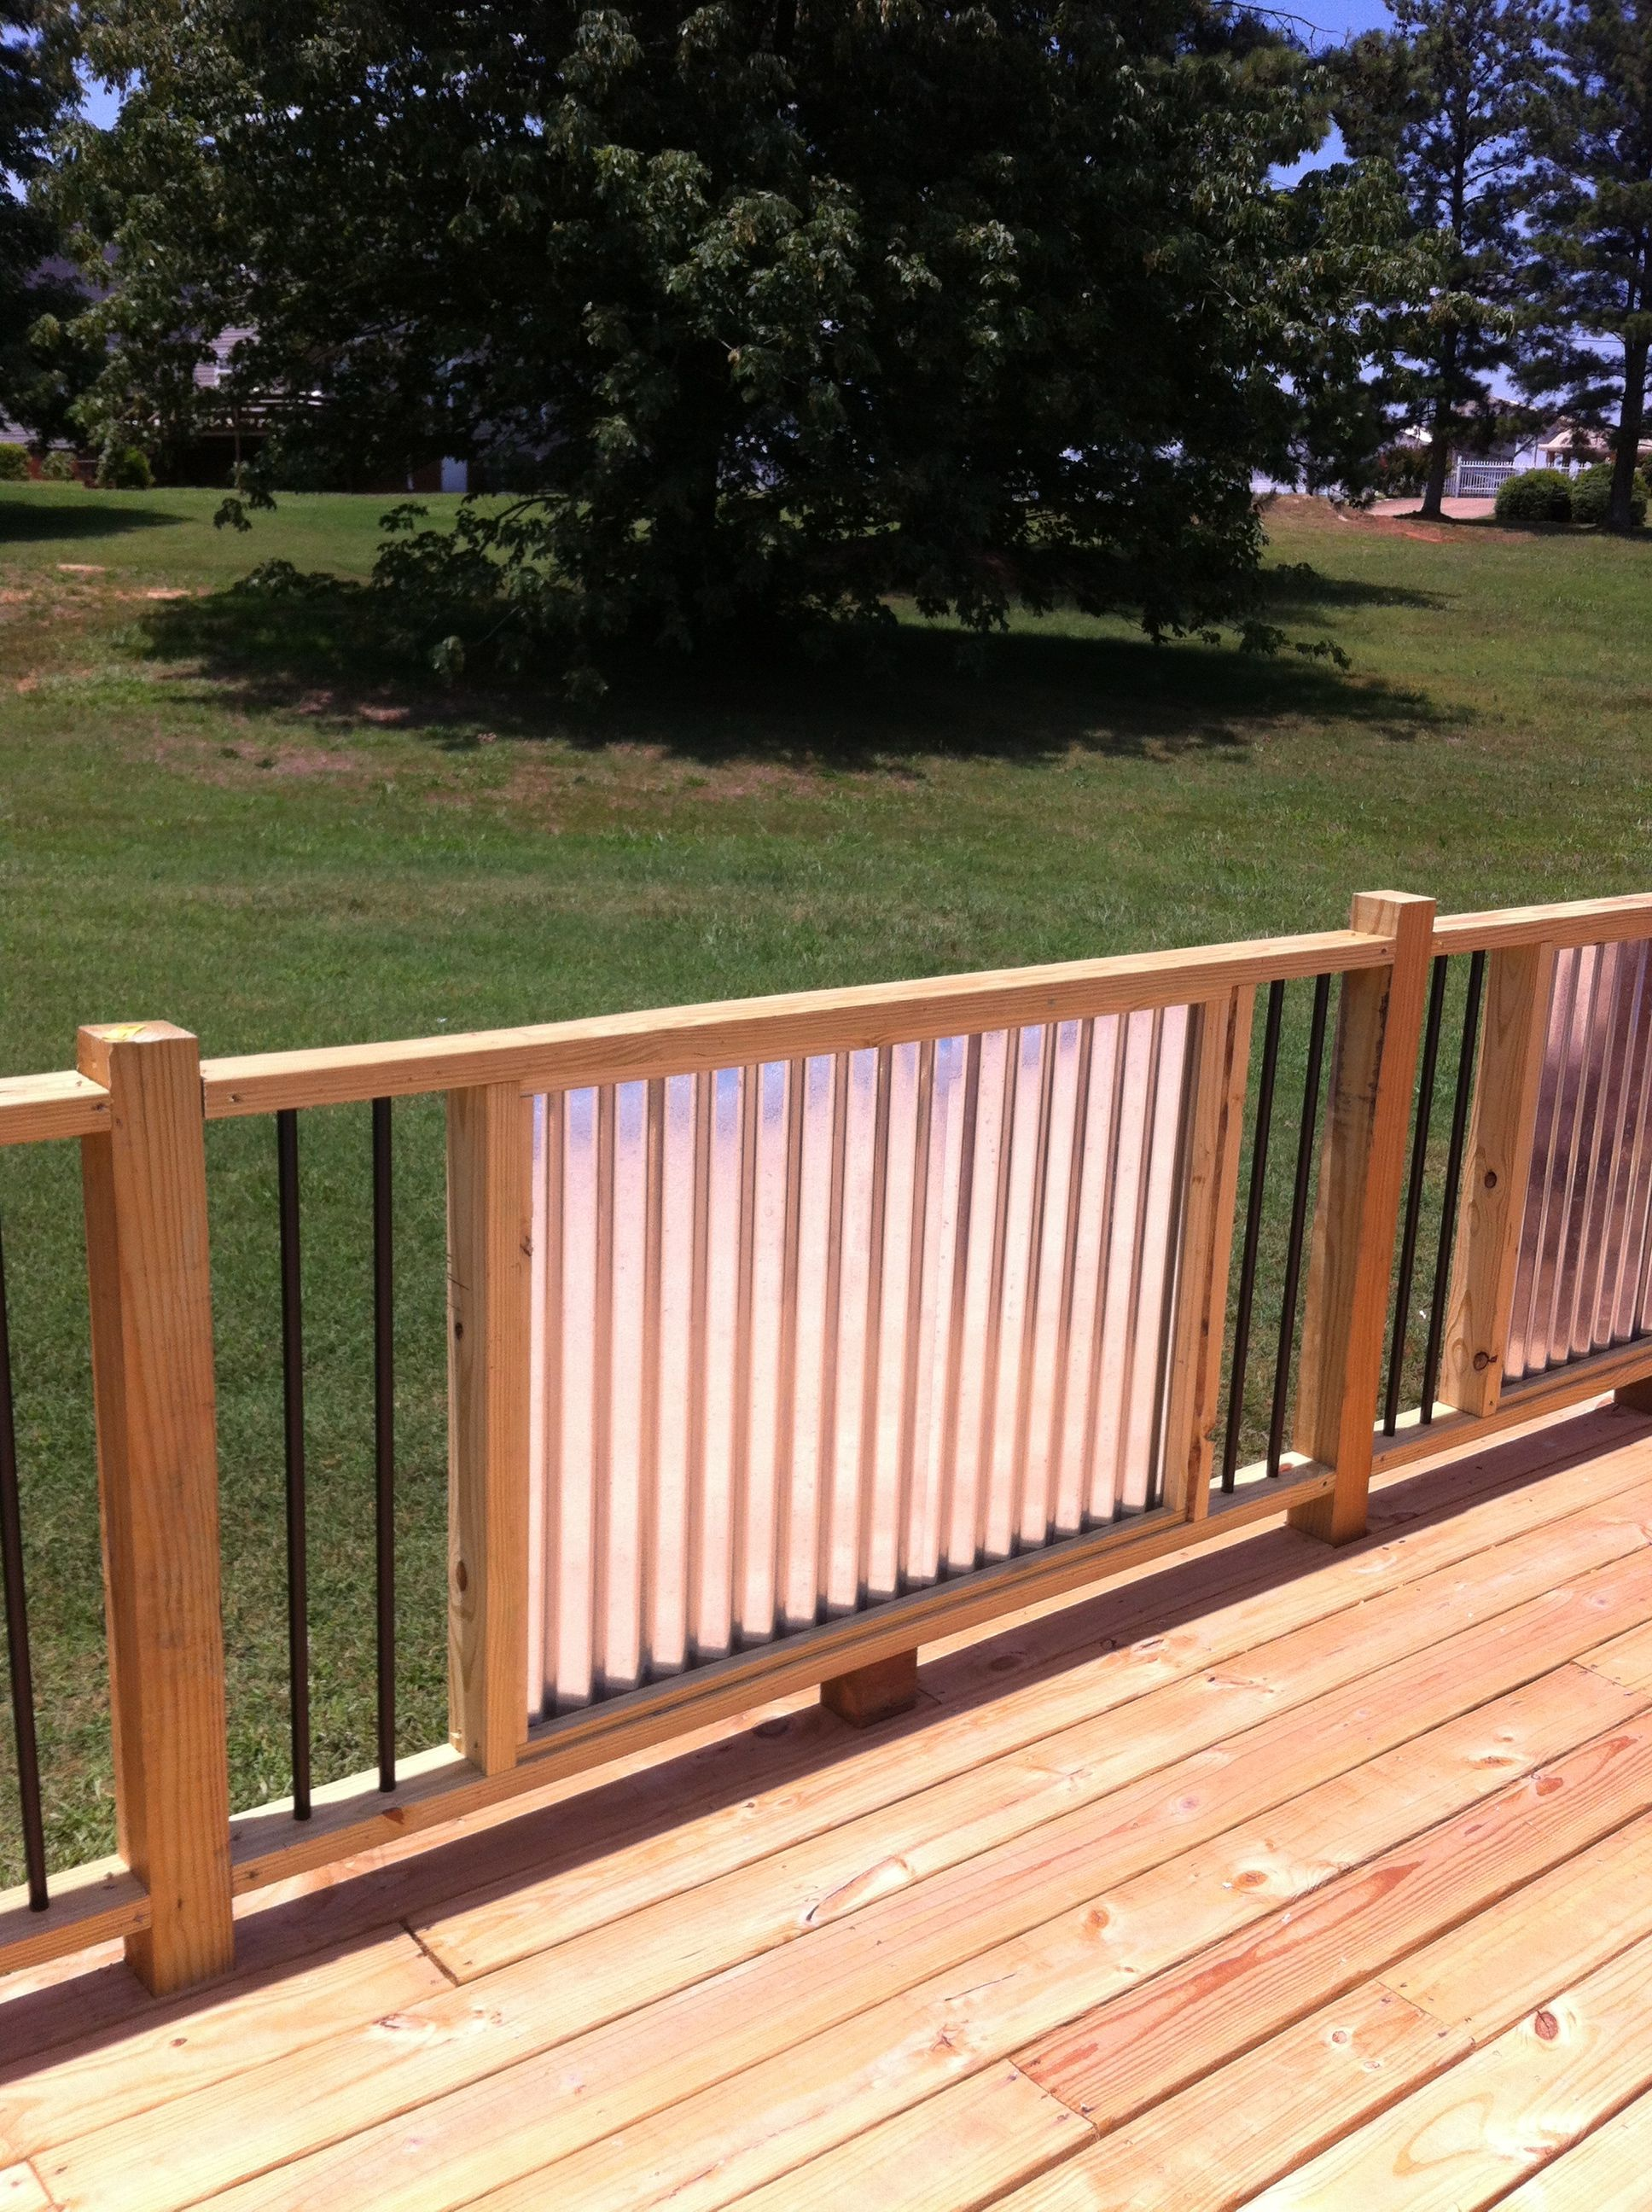 My new railings corrugated metal and metal balusters my husband my new railings corrugated metal and metal balusters my husband is a genius baanklon Image collections